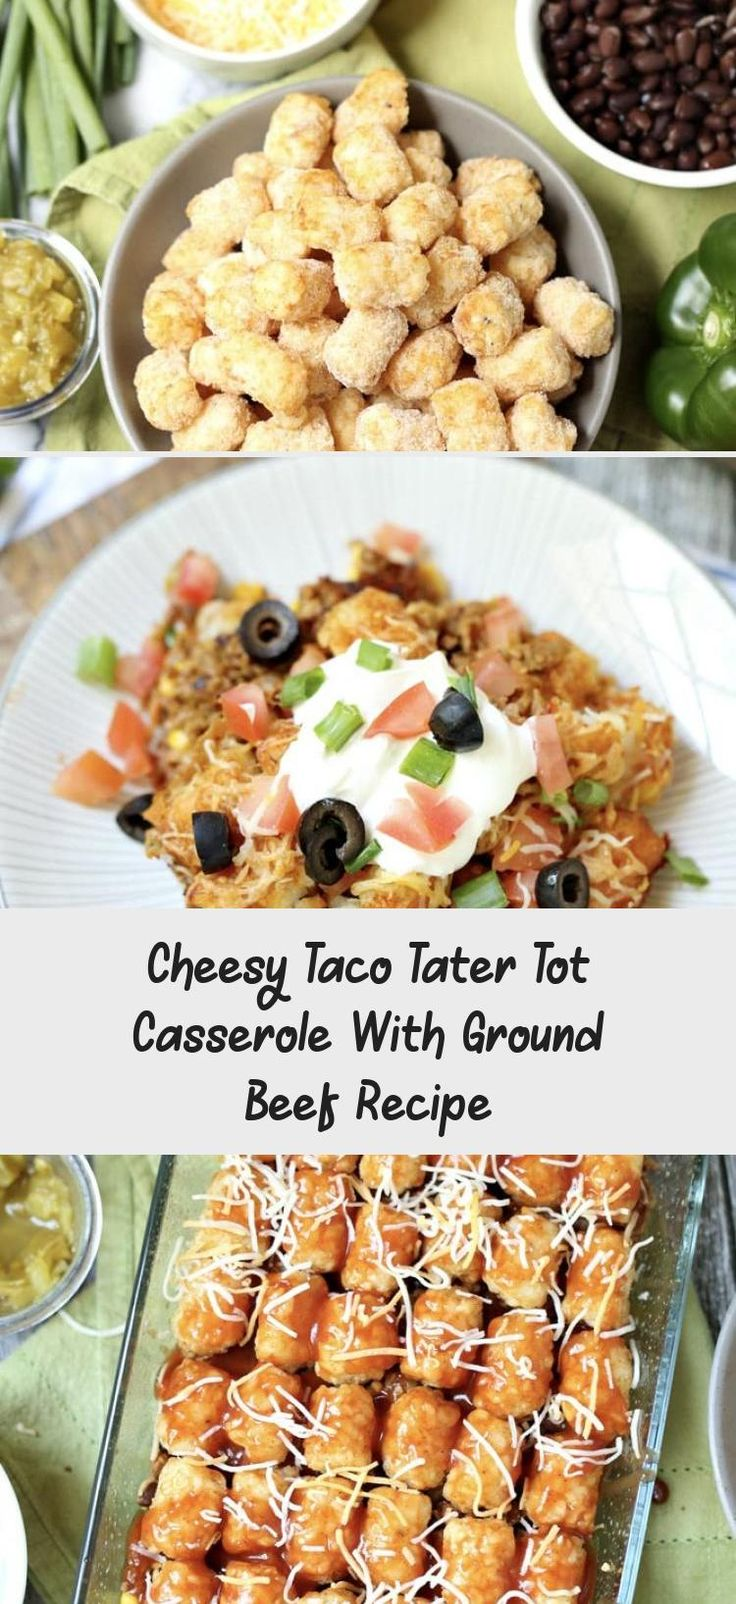 If you're looking for an easy kid friendly recipe, look no ...